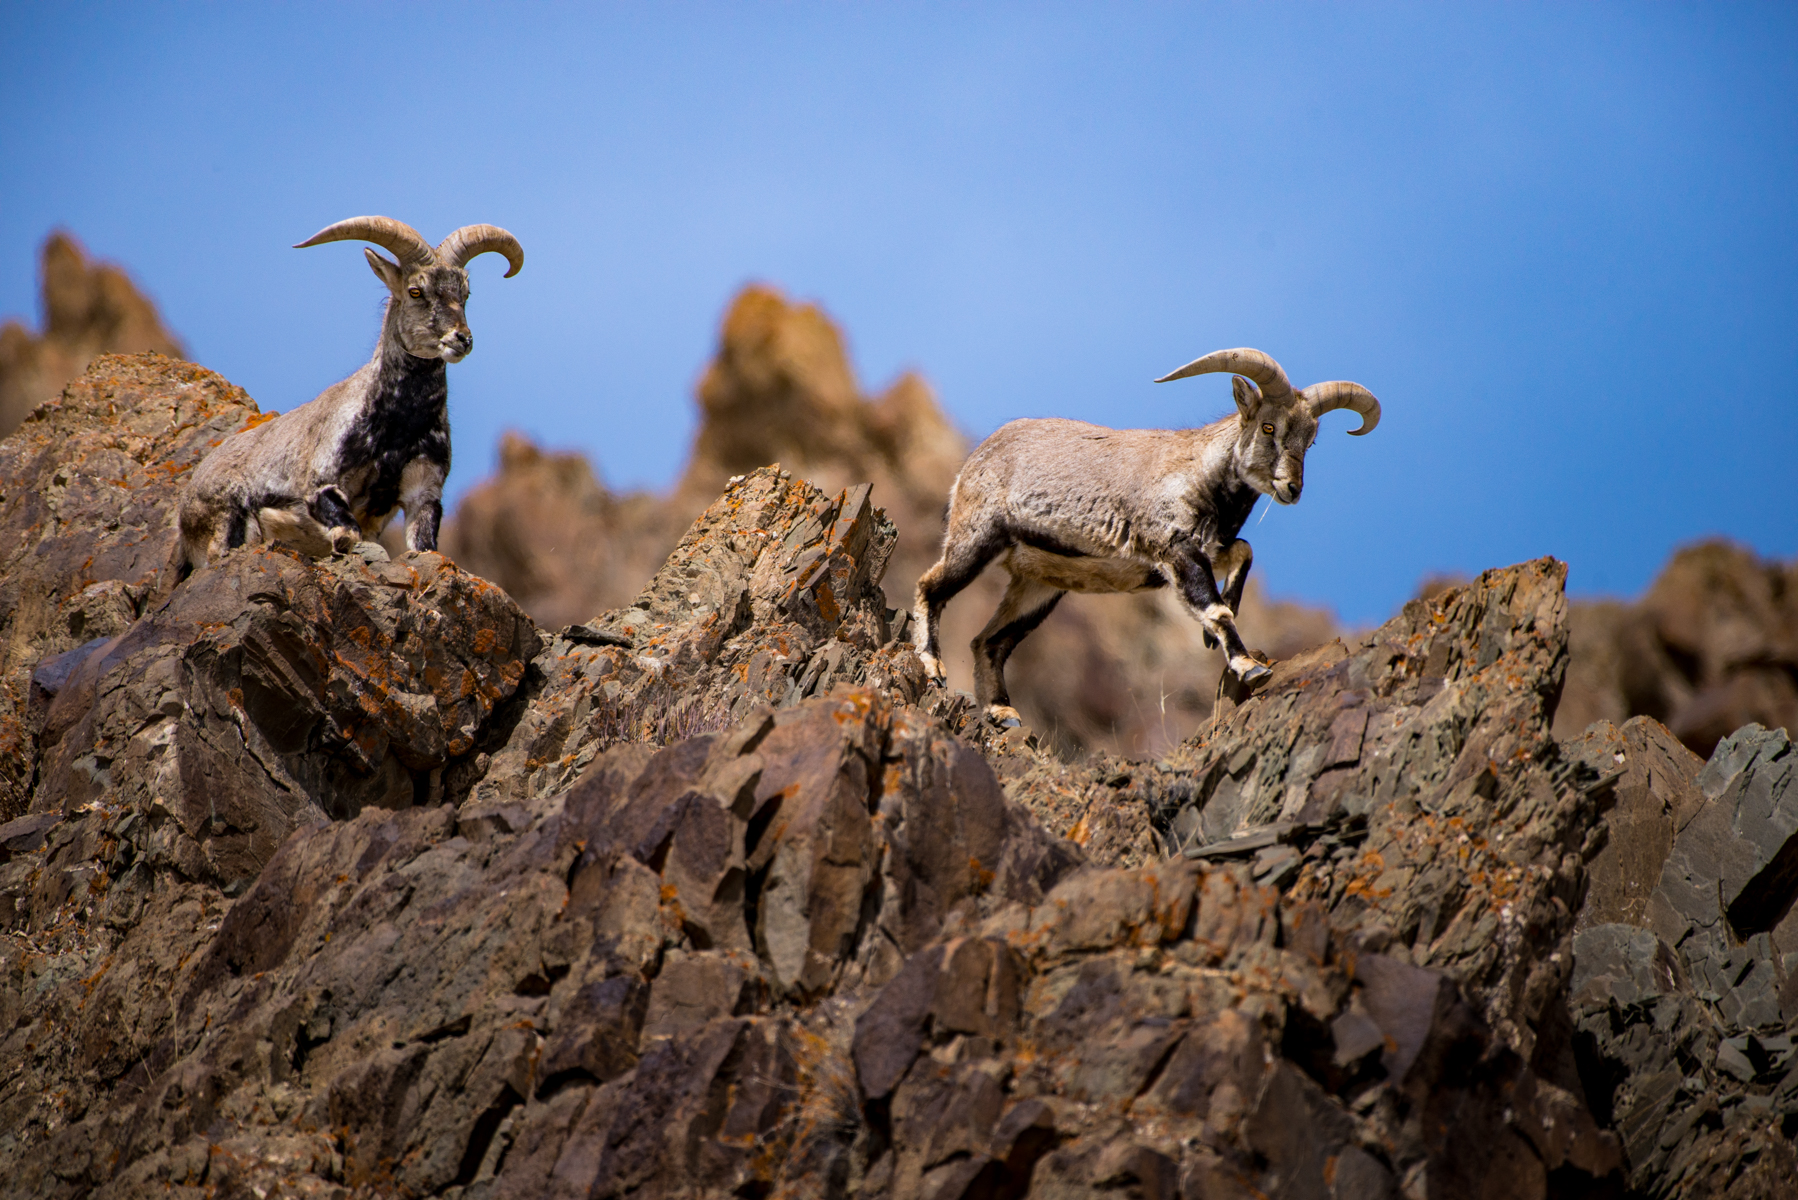 Himalayan Blue Sheep (Pseudois nayaur) in Hemis NP